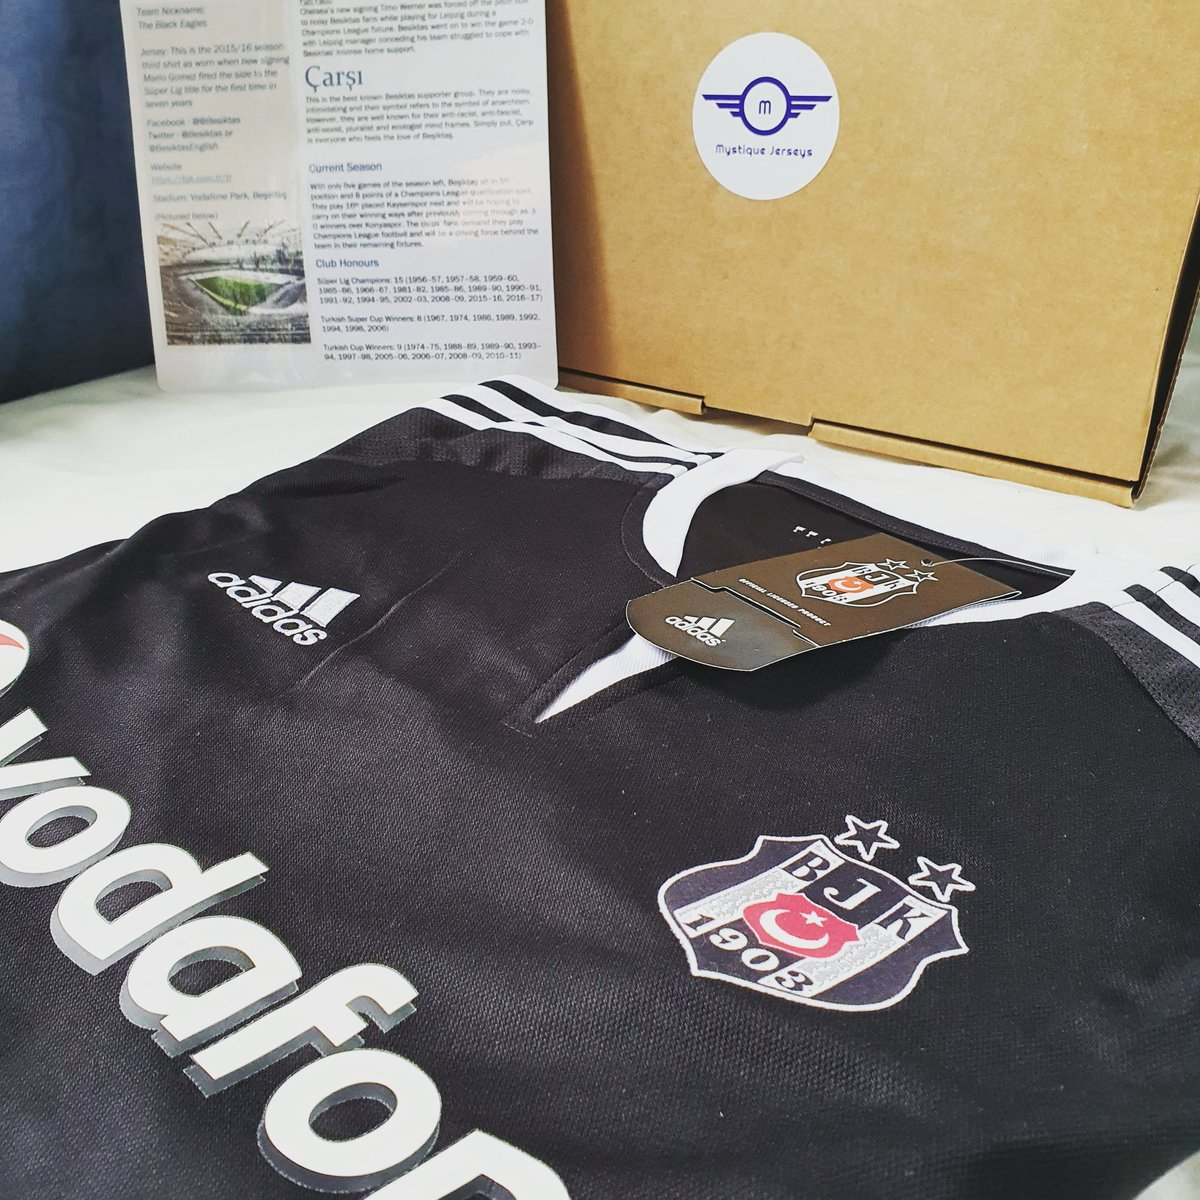 One of our popular mystery football/soccer boxes 🤩. . This customer wished to avoid English teams so we treated him to a Turkish league team along with a personalised fan file!  . #mysteryjersey #supporterpack #fanfile #besiktas #beşiktaş #süperlig #timowerner #noisyfans #çarşı https://t.co/vV8ttQSfL4